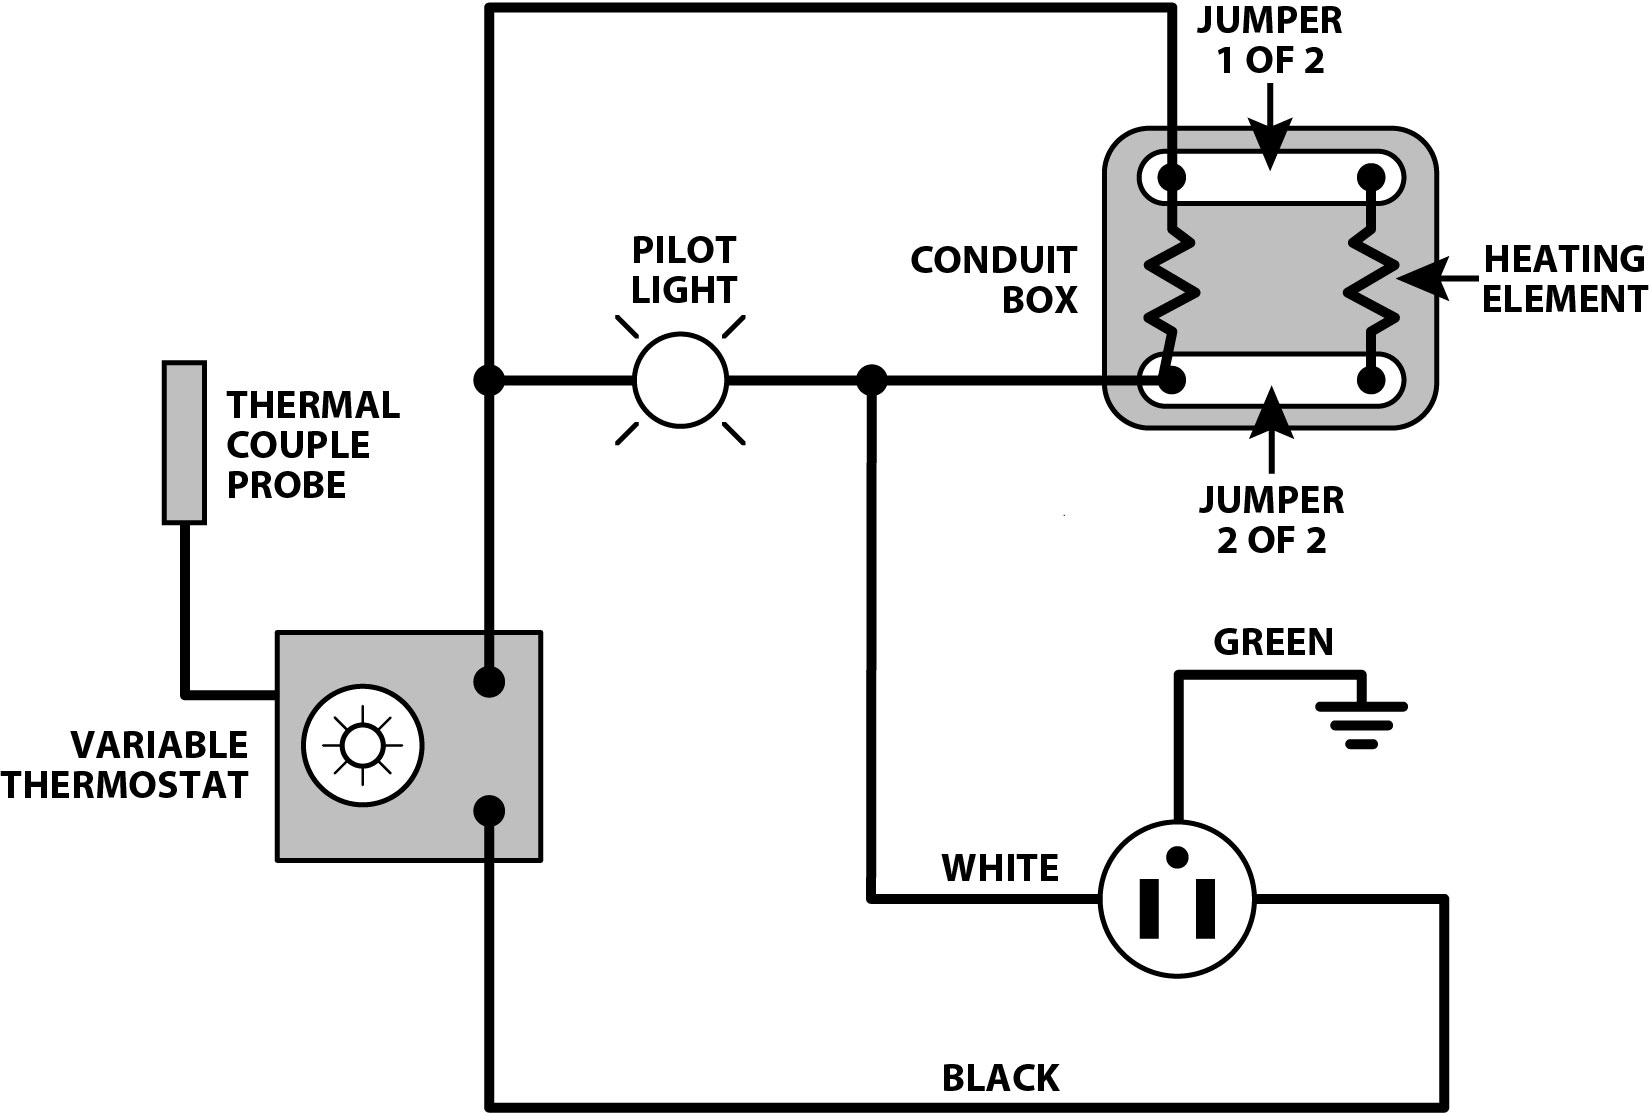 Phoenix Spa Wiring Schematic - Electrical Work Wiring Diagram •